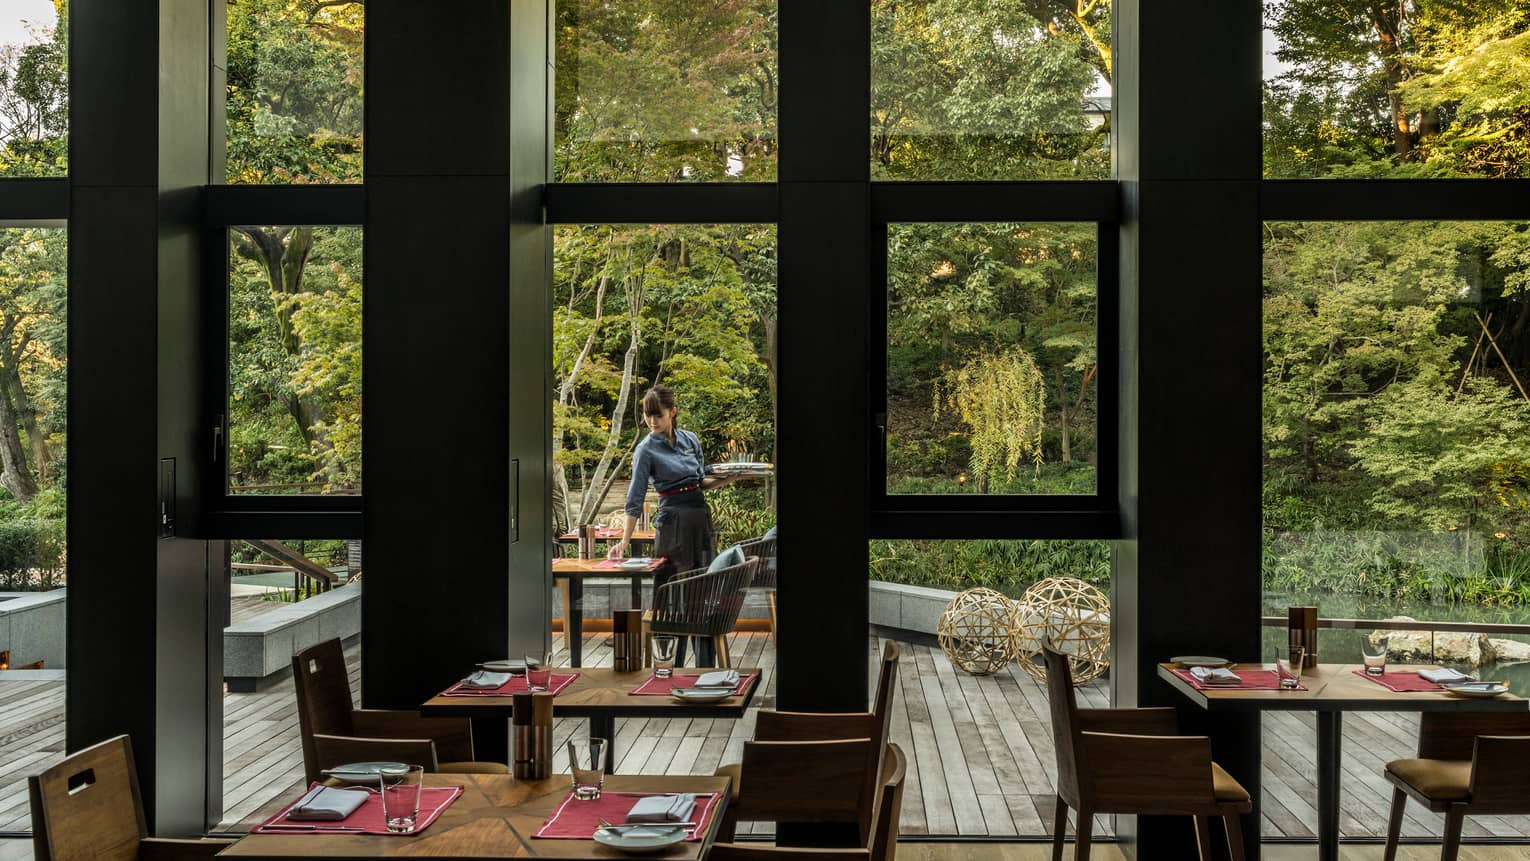 View of Brasserie patio and forest through window, server sets table